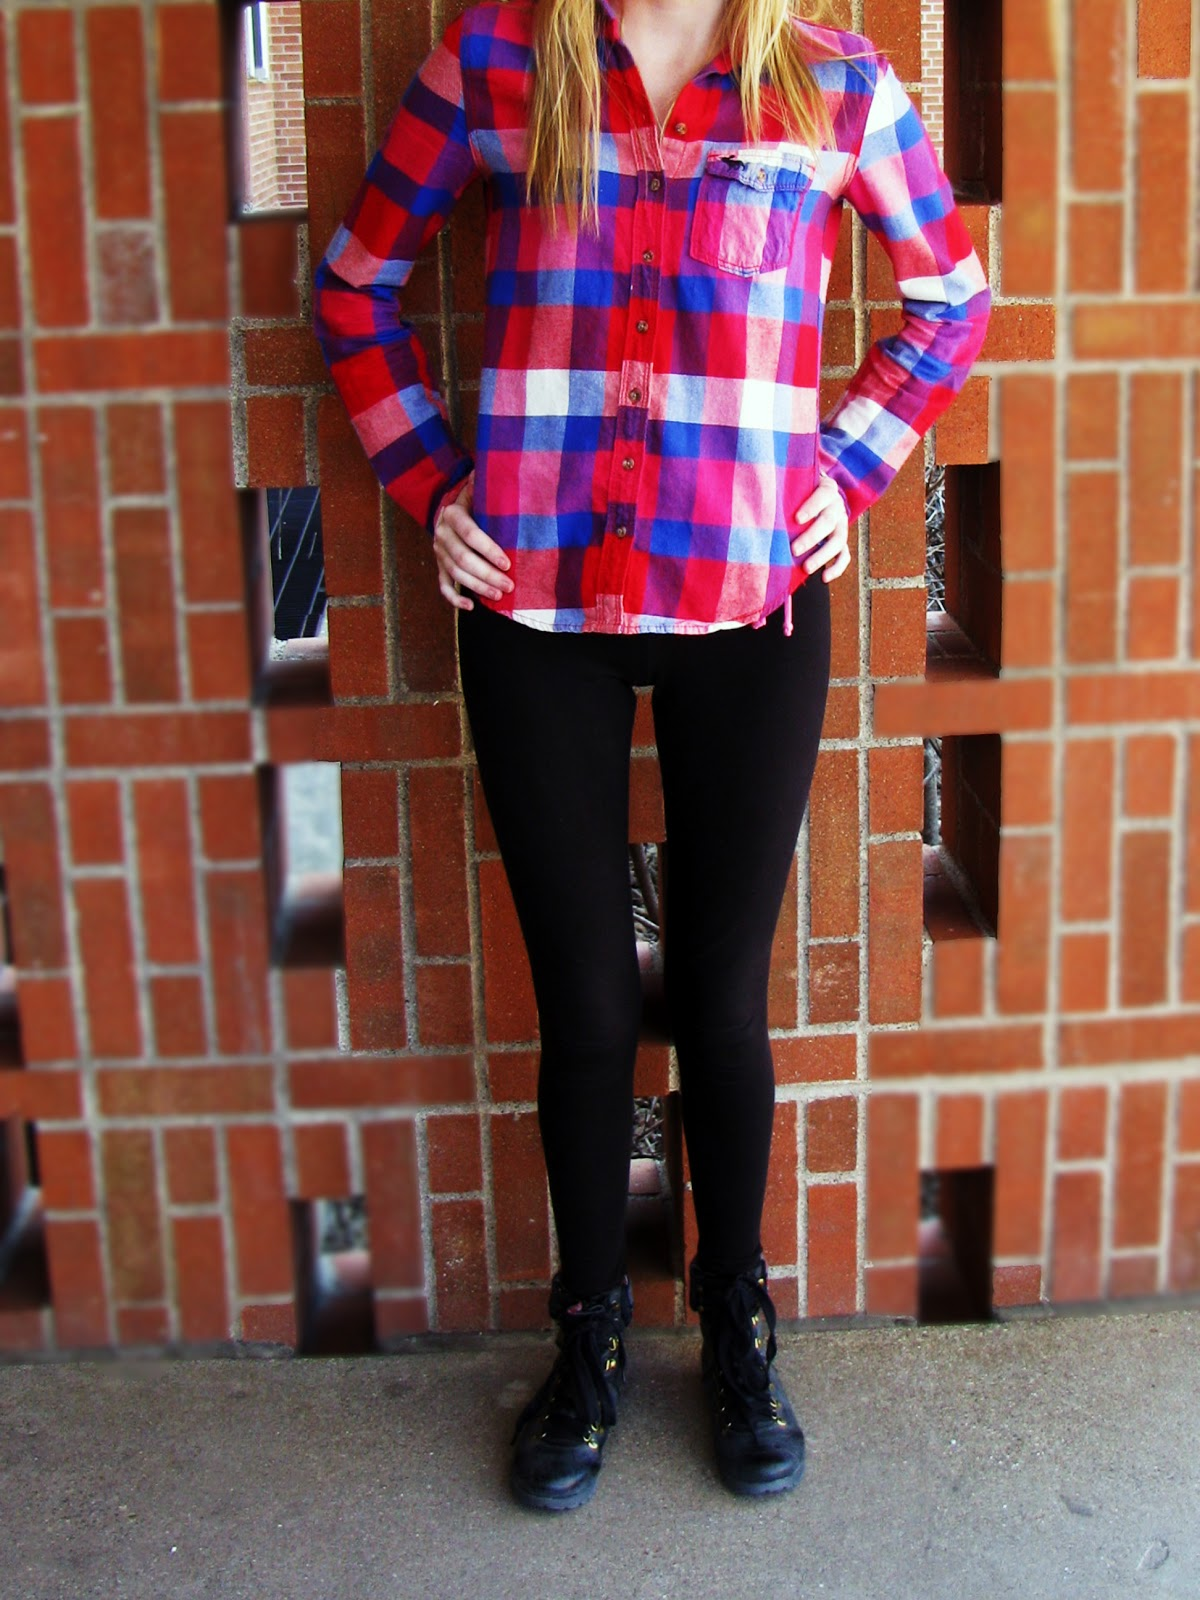 Look - Wear you Trendswould colored tights video